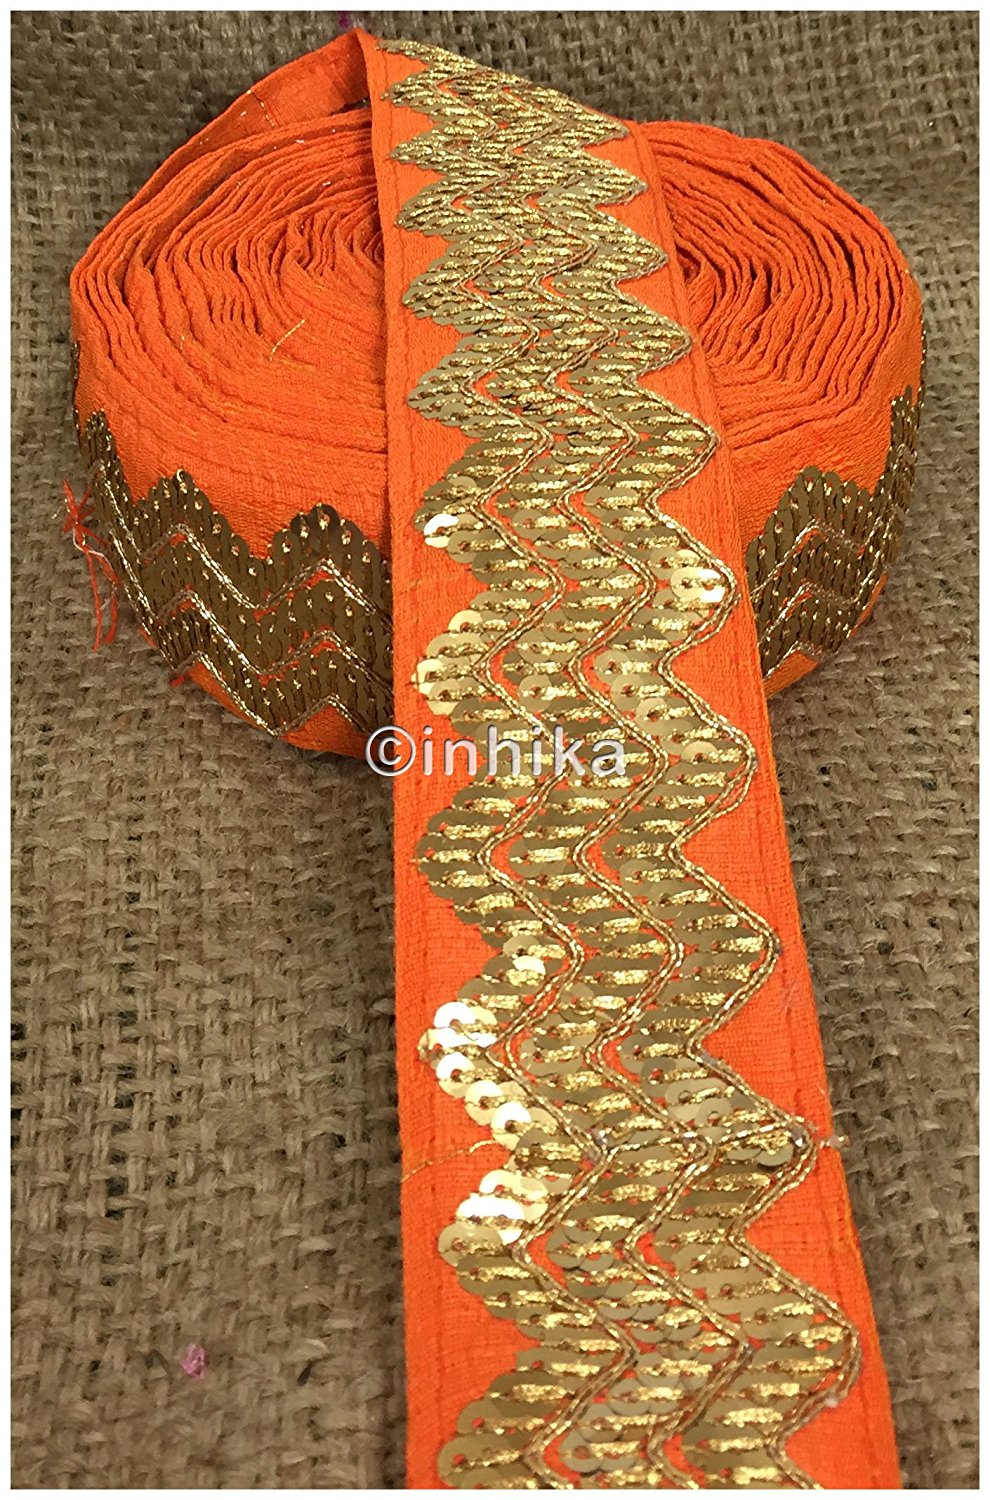 lace trim fabric lace applique trim wedding dress dance costumes and dresses Orange, Embroidery, Sequins, 3 Inch Wide material Cotton Mix, Dupion